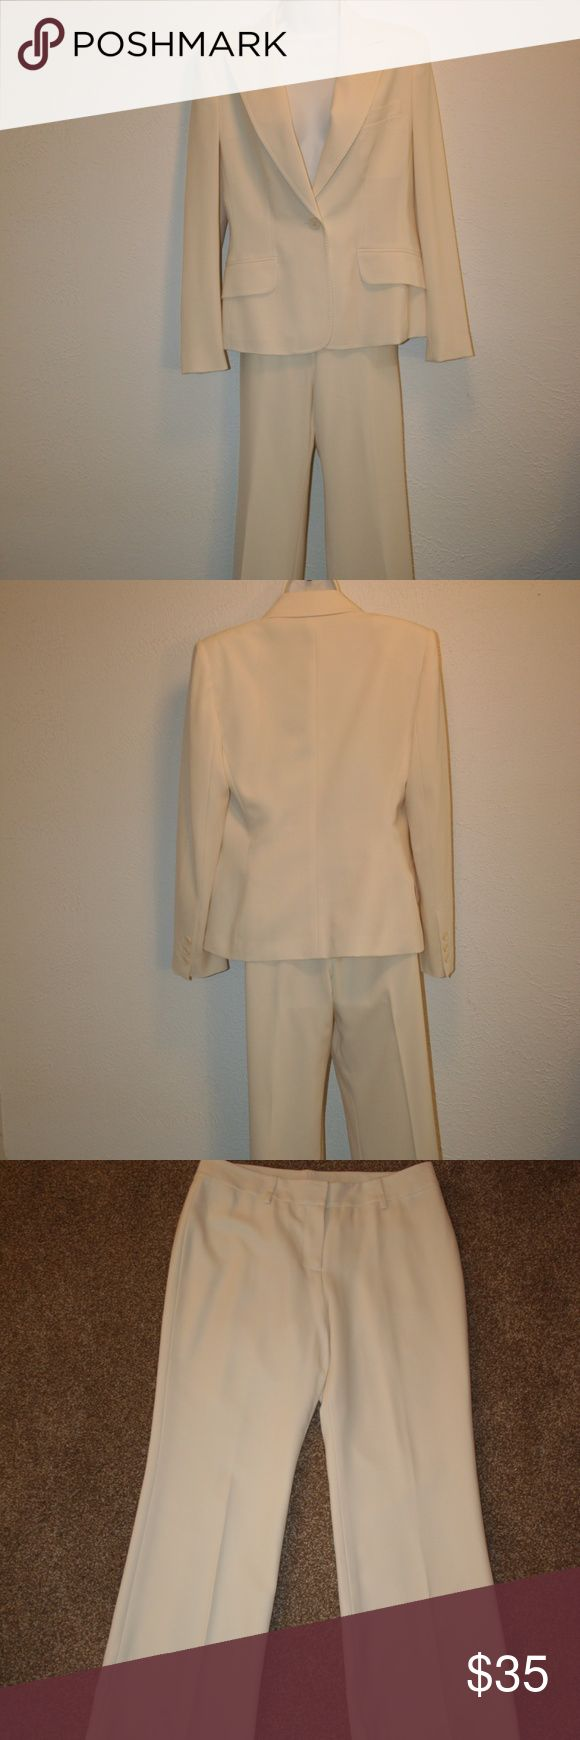 """ANNE KLEIN 2 Pc Pant Suit Sz 6 Cream Chest 37"""" Anne Klein Excellent Condition - No Stains or Holes Cream or Ivory Pant Suit Lined 6 Shell:  100% Polyester Lining:  100% Acetate    Coat: One Button Closure Fitted Seams Long Sleeves Three Buttons At Sleeve Hem Two Front Pockets Chest:  37"""" (armpit to armpit then doubled) Waist:  33"""" Sleeve Length Outside:  24 1/2"""" Length:  26"""" (top of rear collar then down) Shoulder Seam to Shoulder Seam: 16""""   Pants: Zipper and Two Hook Closure Waist:  30""""…"""